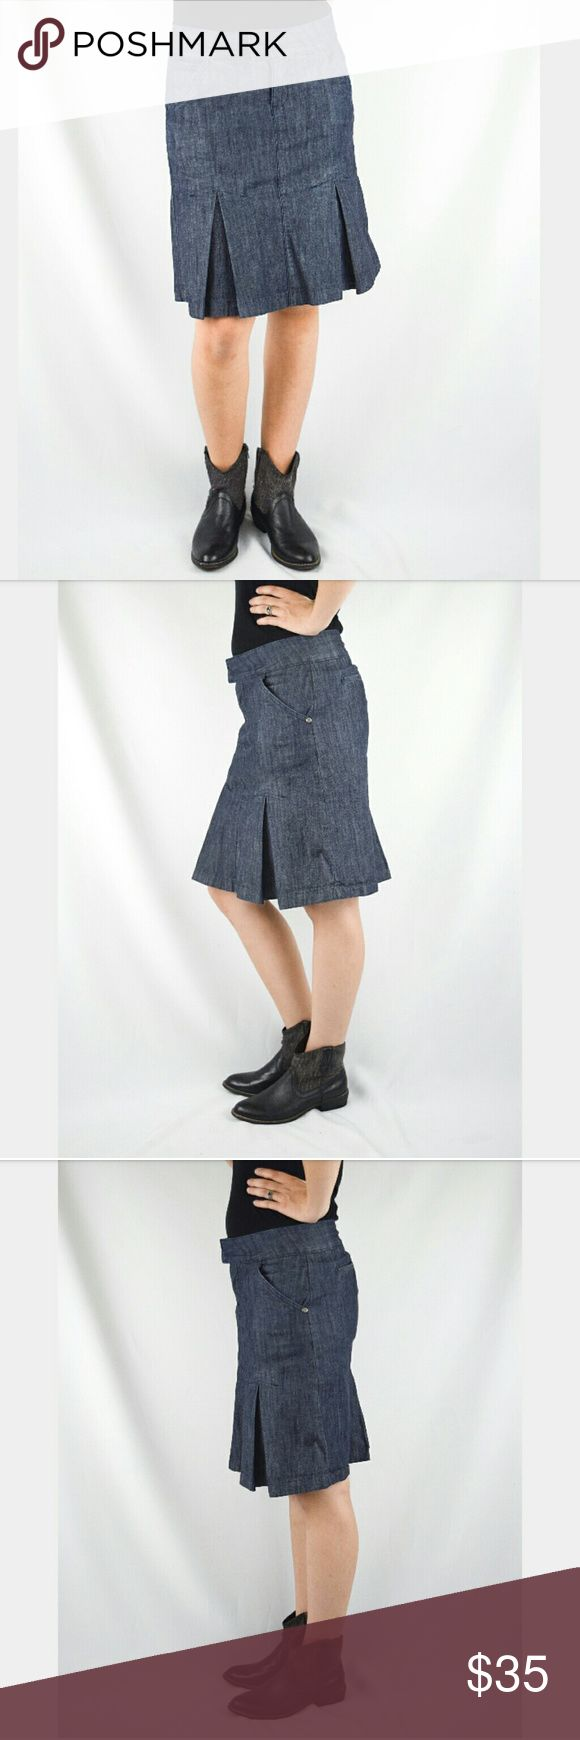 Downeast Dark Denim Pleated Midi Skirt XS Dalring knee length denim skirt. Darker denim. Side and back pockets. Front hidden zipper. Pleated around bottom half, almost gives it a mermaid effect. Inside lined with white and red polka dots. Regular wear but in great condition! Size extra small from Downeast. Length is 20 inches, Waist is 14 1/4, hips are 18 1/4 inches. Measurements are approximate. Open to offers. Downeast Skirts A-Line or Full